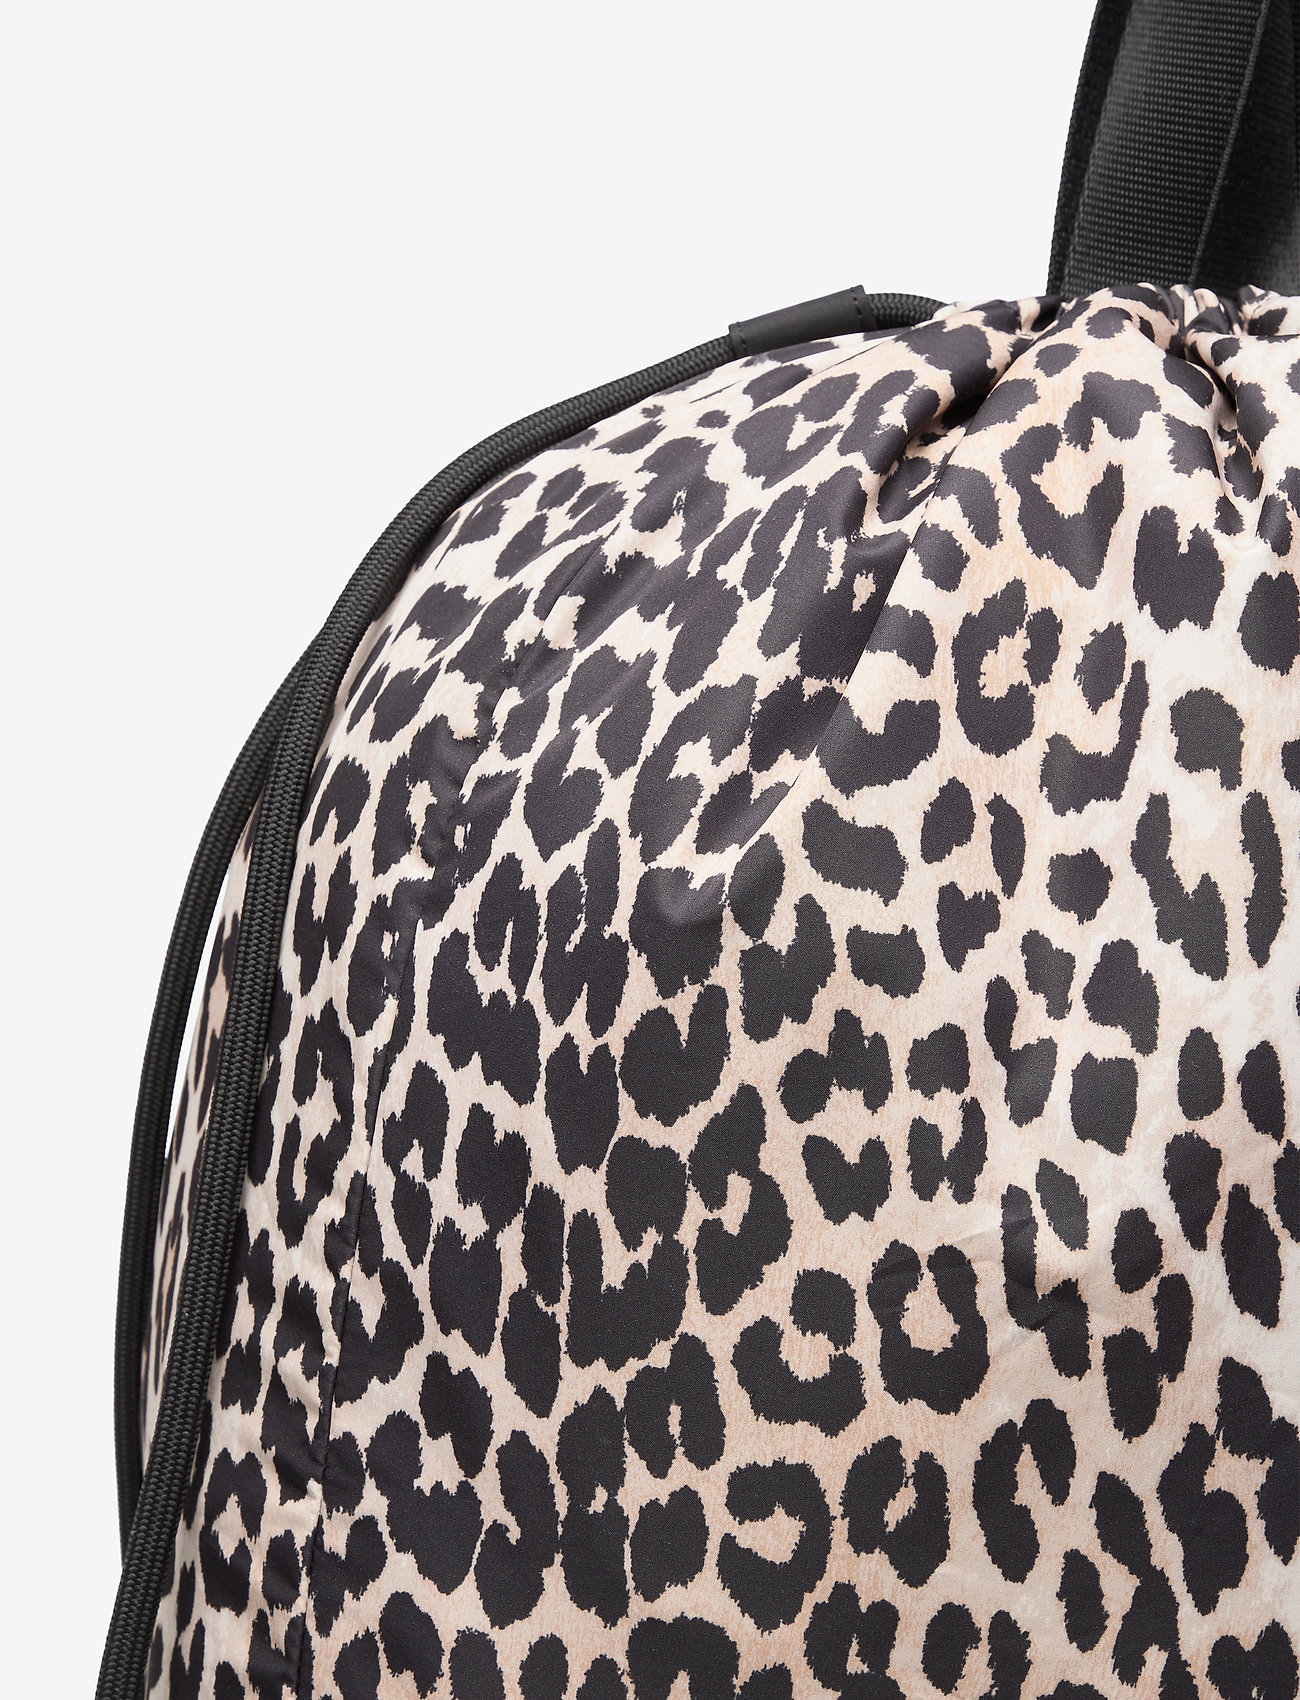 Ganni - Recycled Tech Fabric Bags - bags - leopard - 1